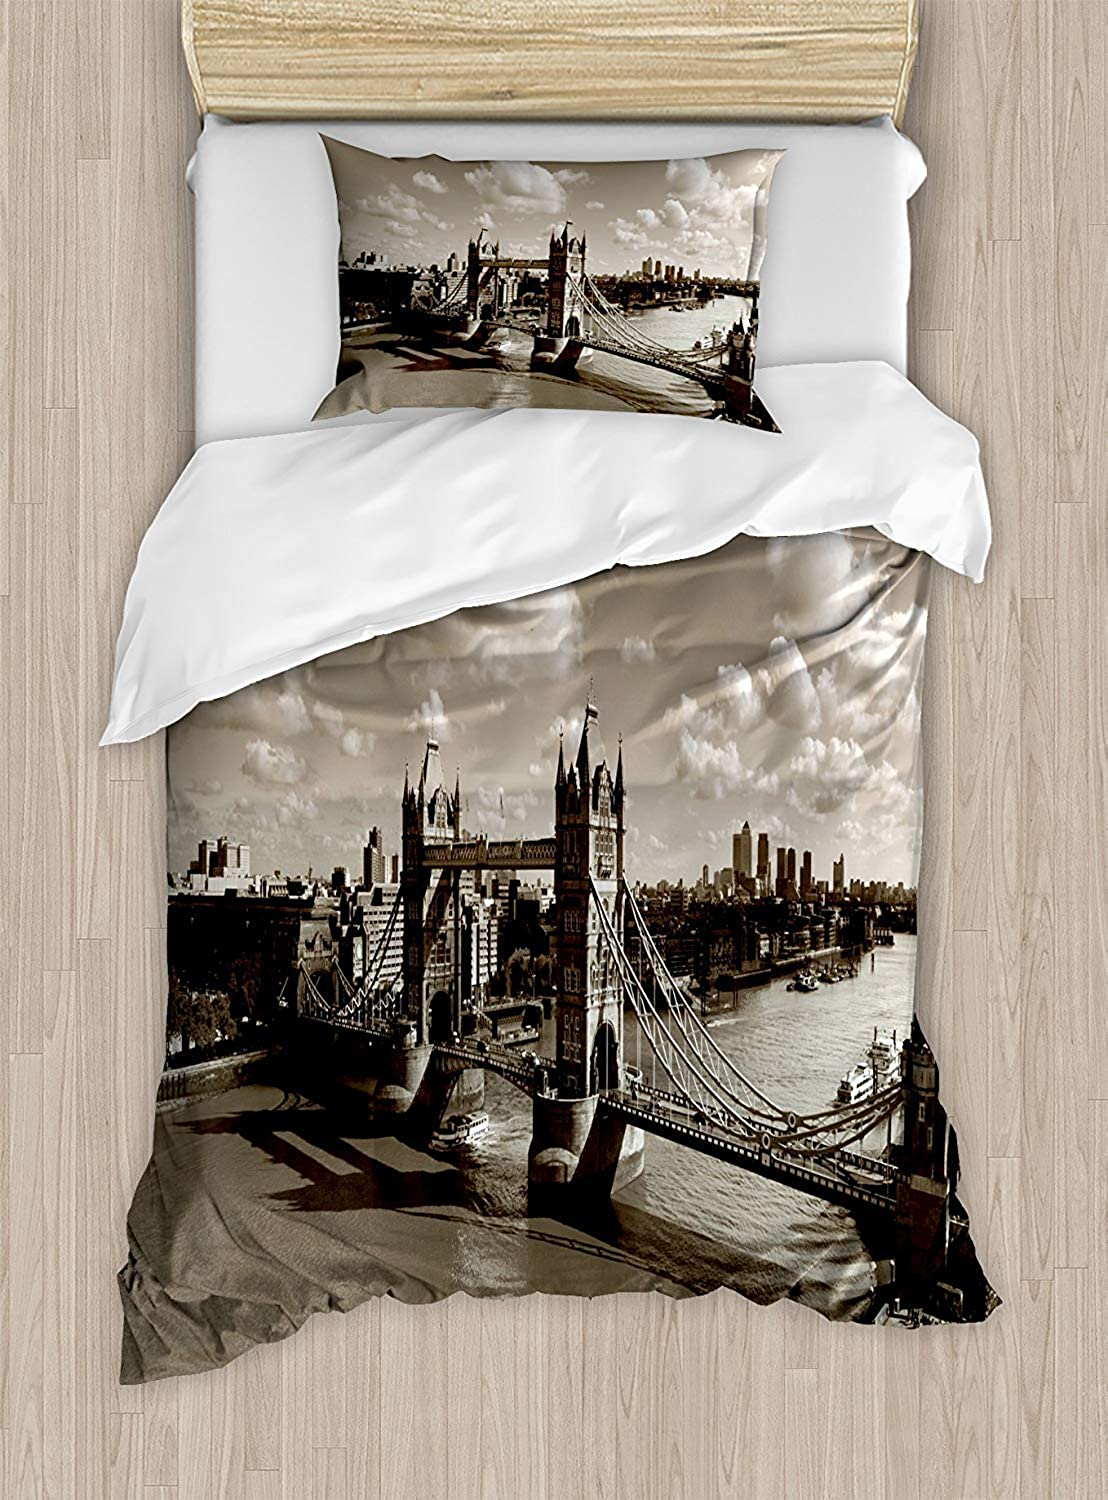 VpinkLVHOME Travel Duvet Cover Set Twin Size Tower Bridge in London City Cloudy Sky Old Historic Cityscape Nostalgia England,Bedding Set for Teen 2Pcs,Sepia White